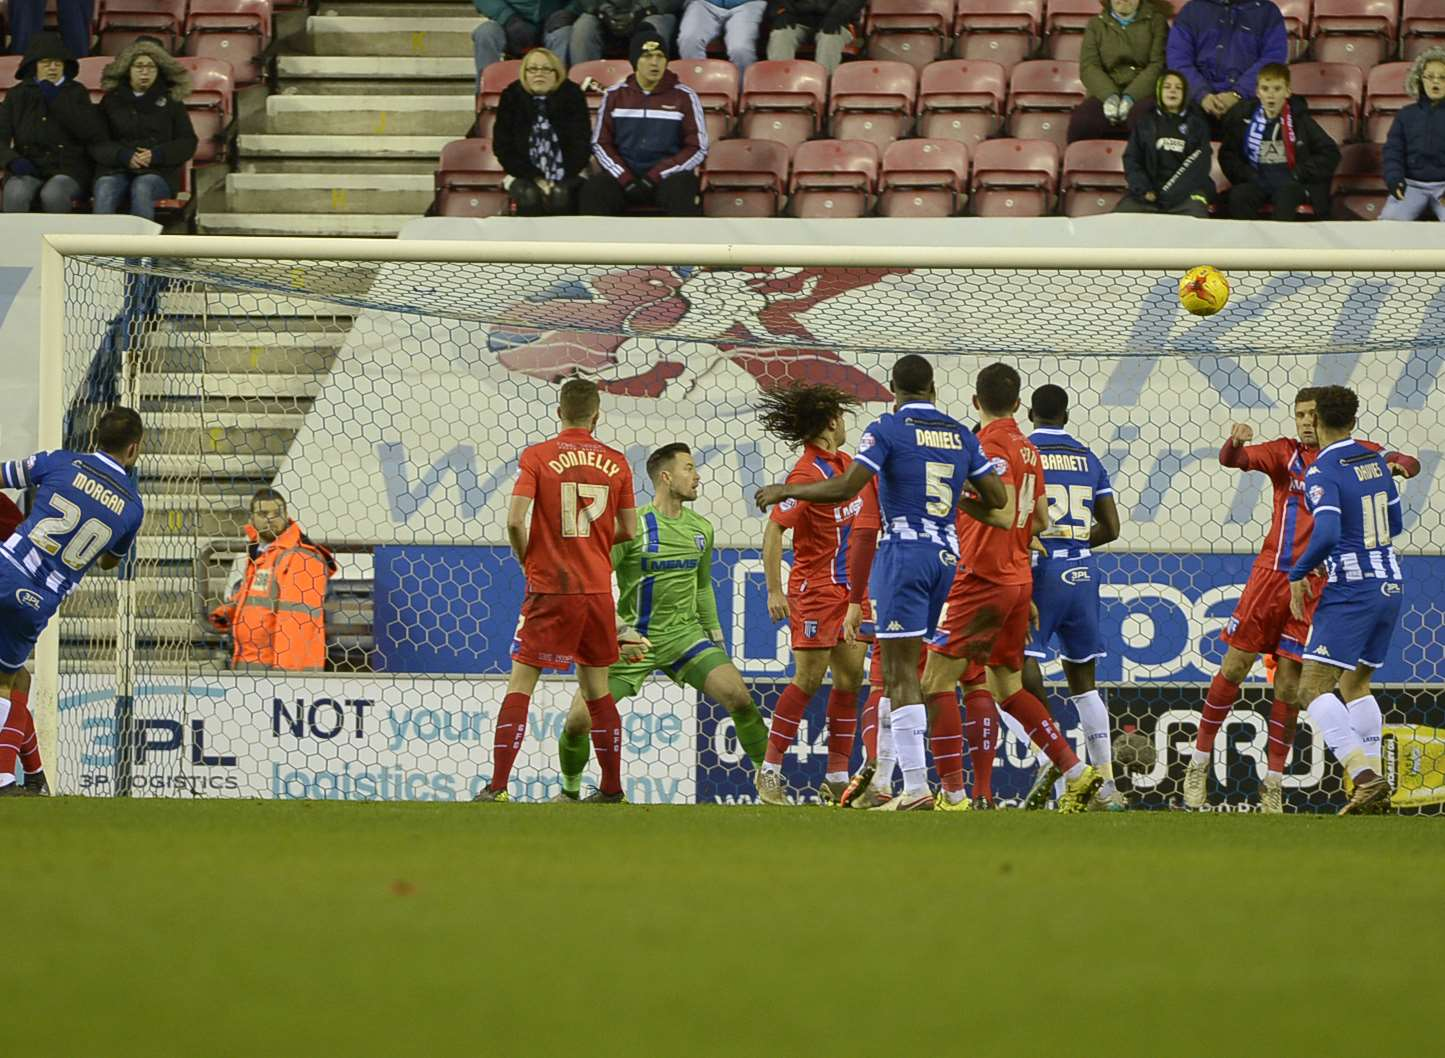 Wigan score their winner Picture: Barry Goodwin